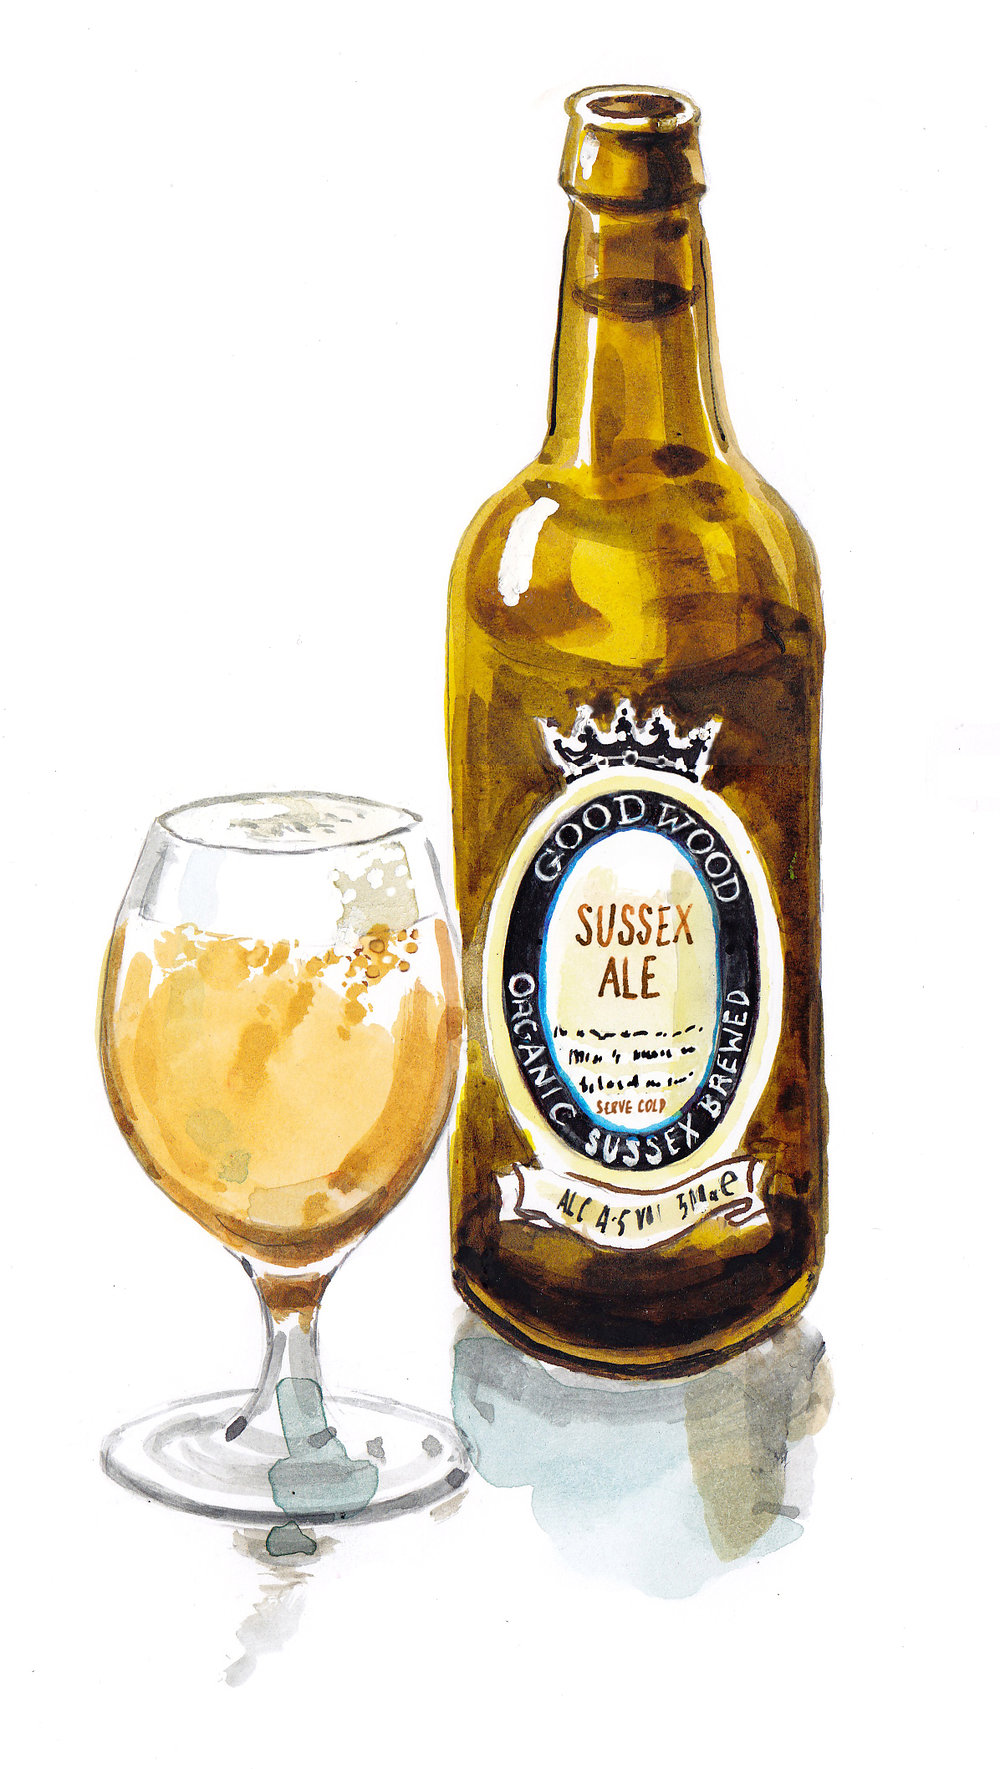 Sussex Ale